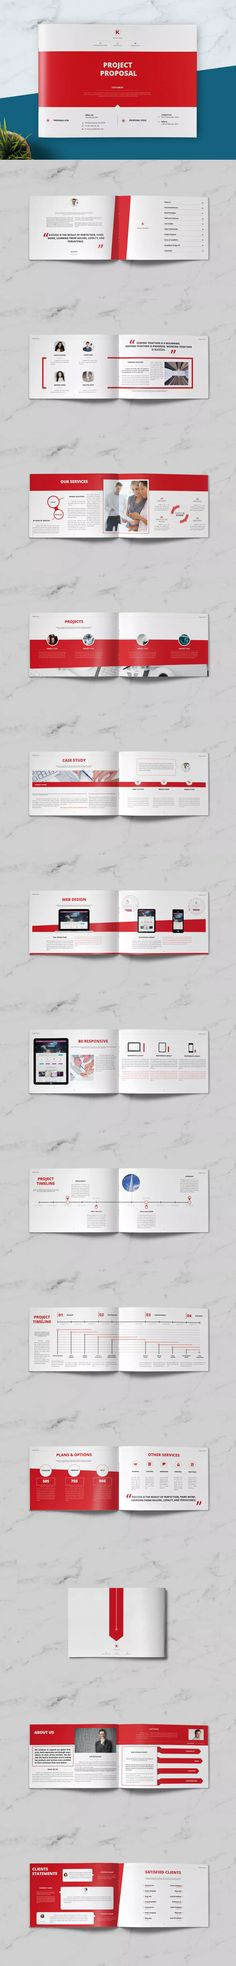 Proposal Pinterest Proposal templates, Proposals and Template - sample catering proposal template